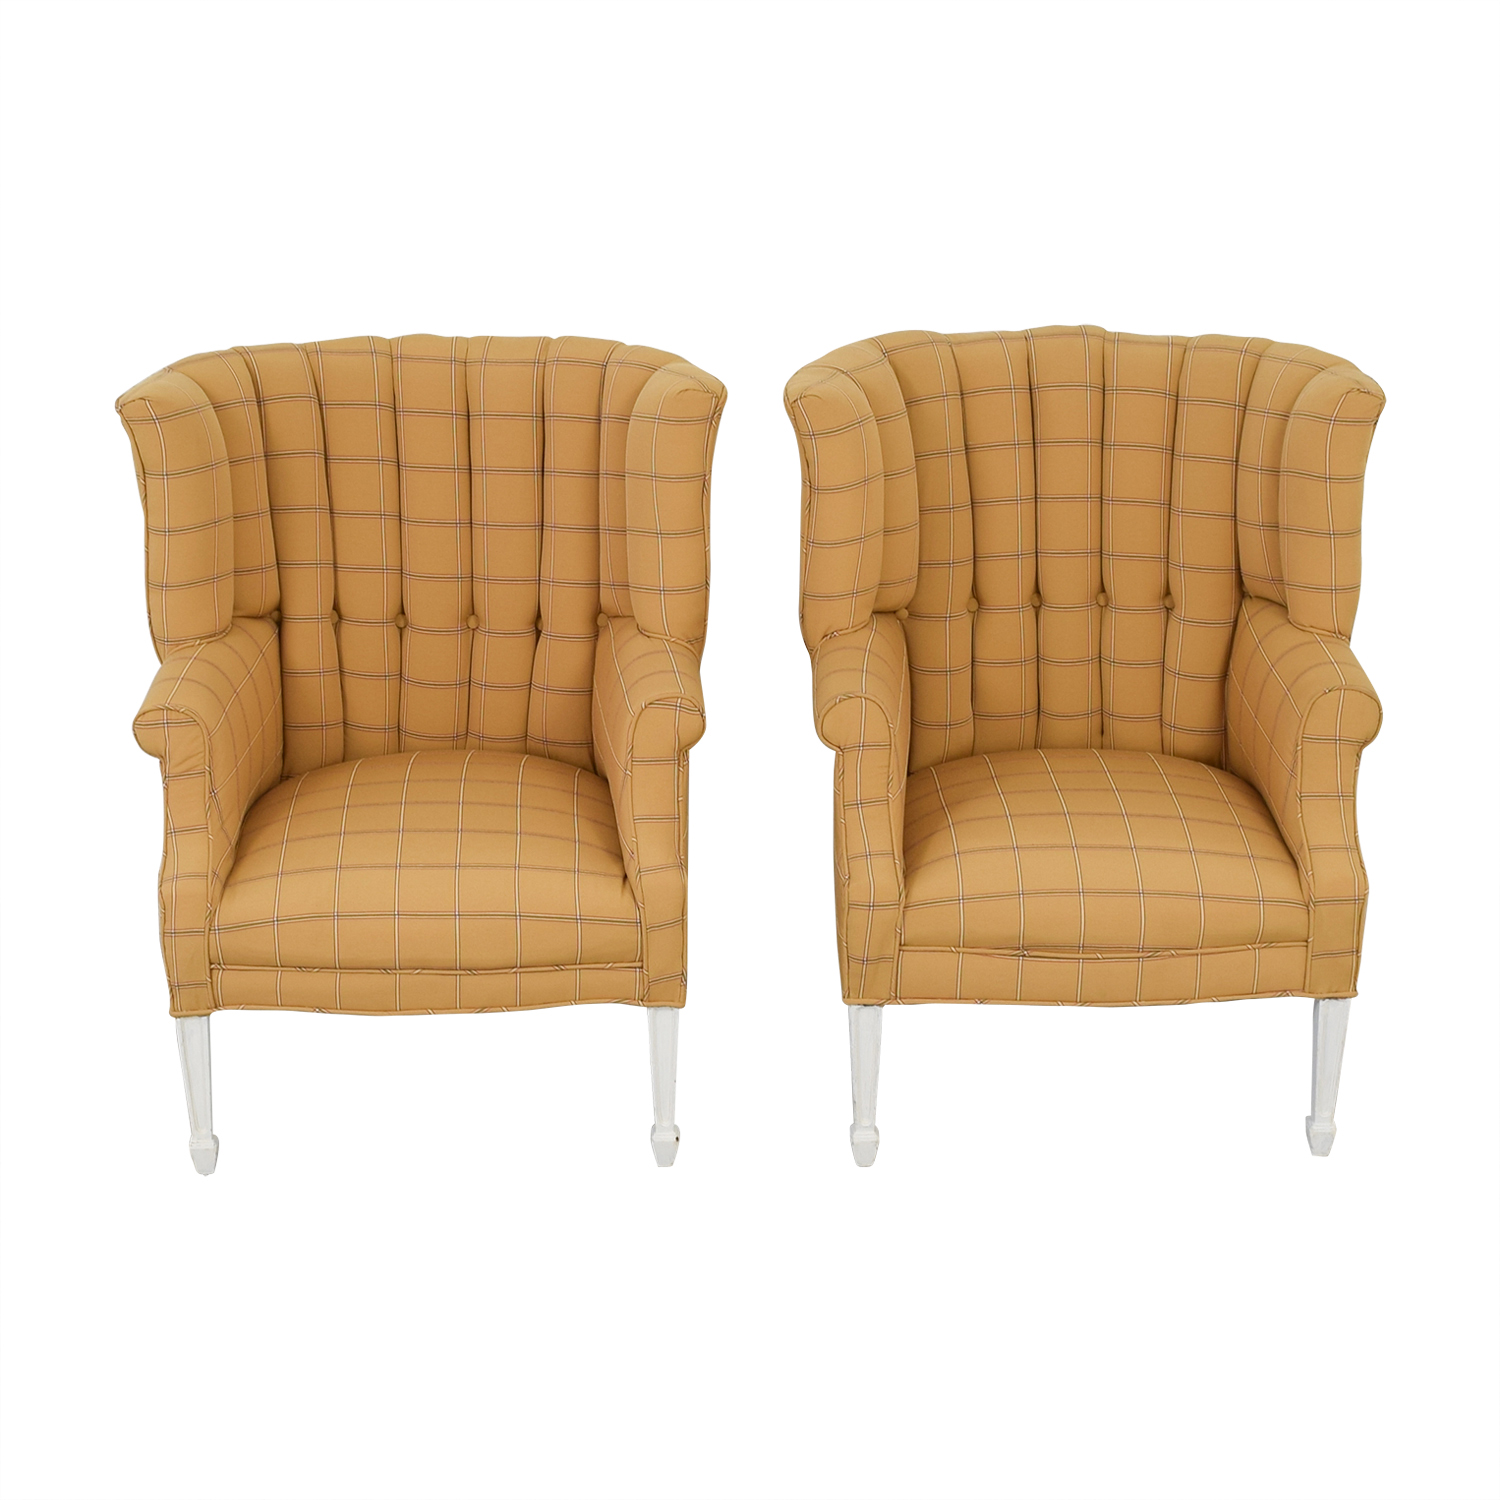 yellow chairs for sale chair covers to buy wholesale uk 75 off vintage and beige plaid wing back accent on